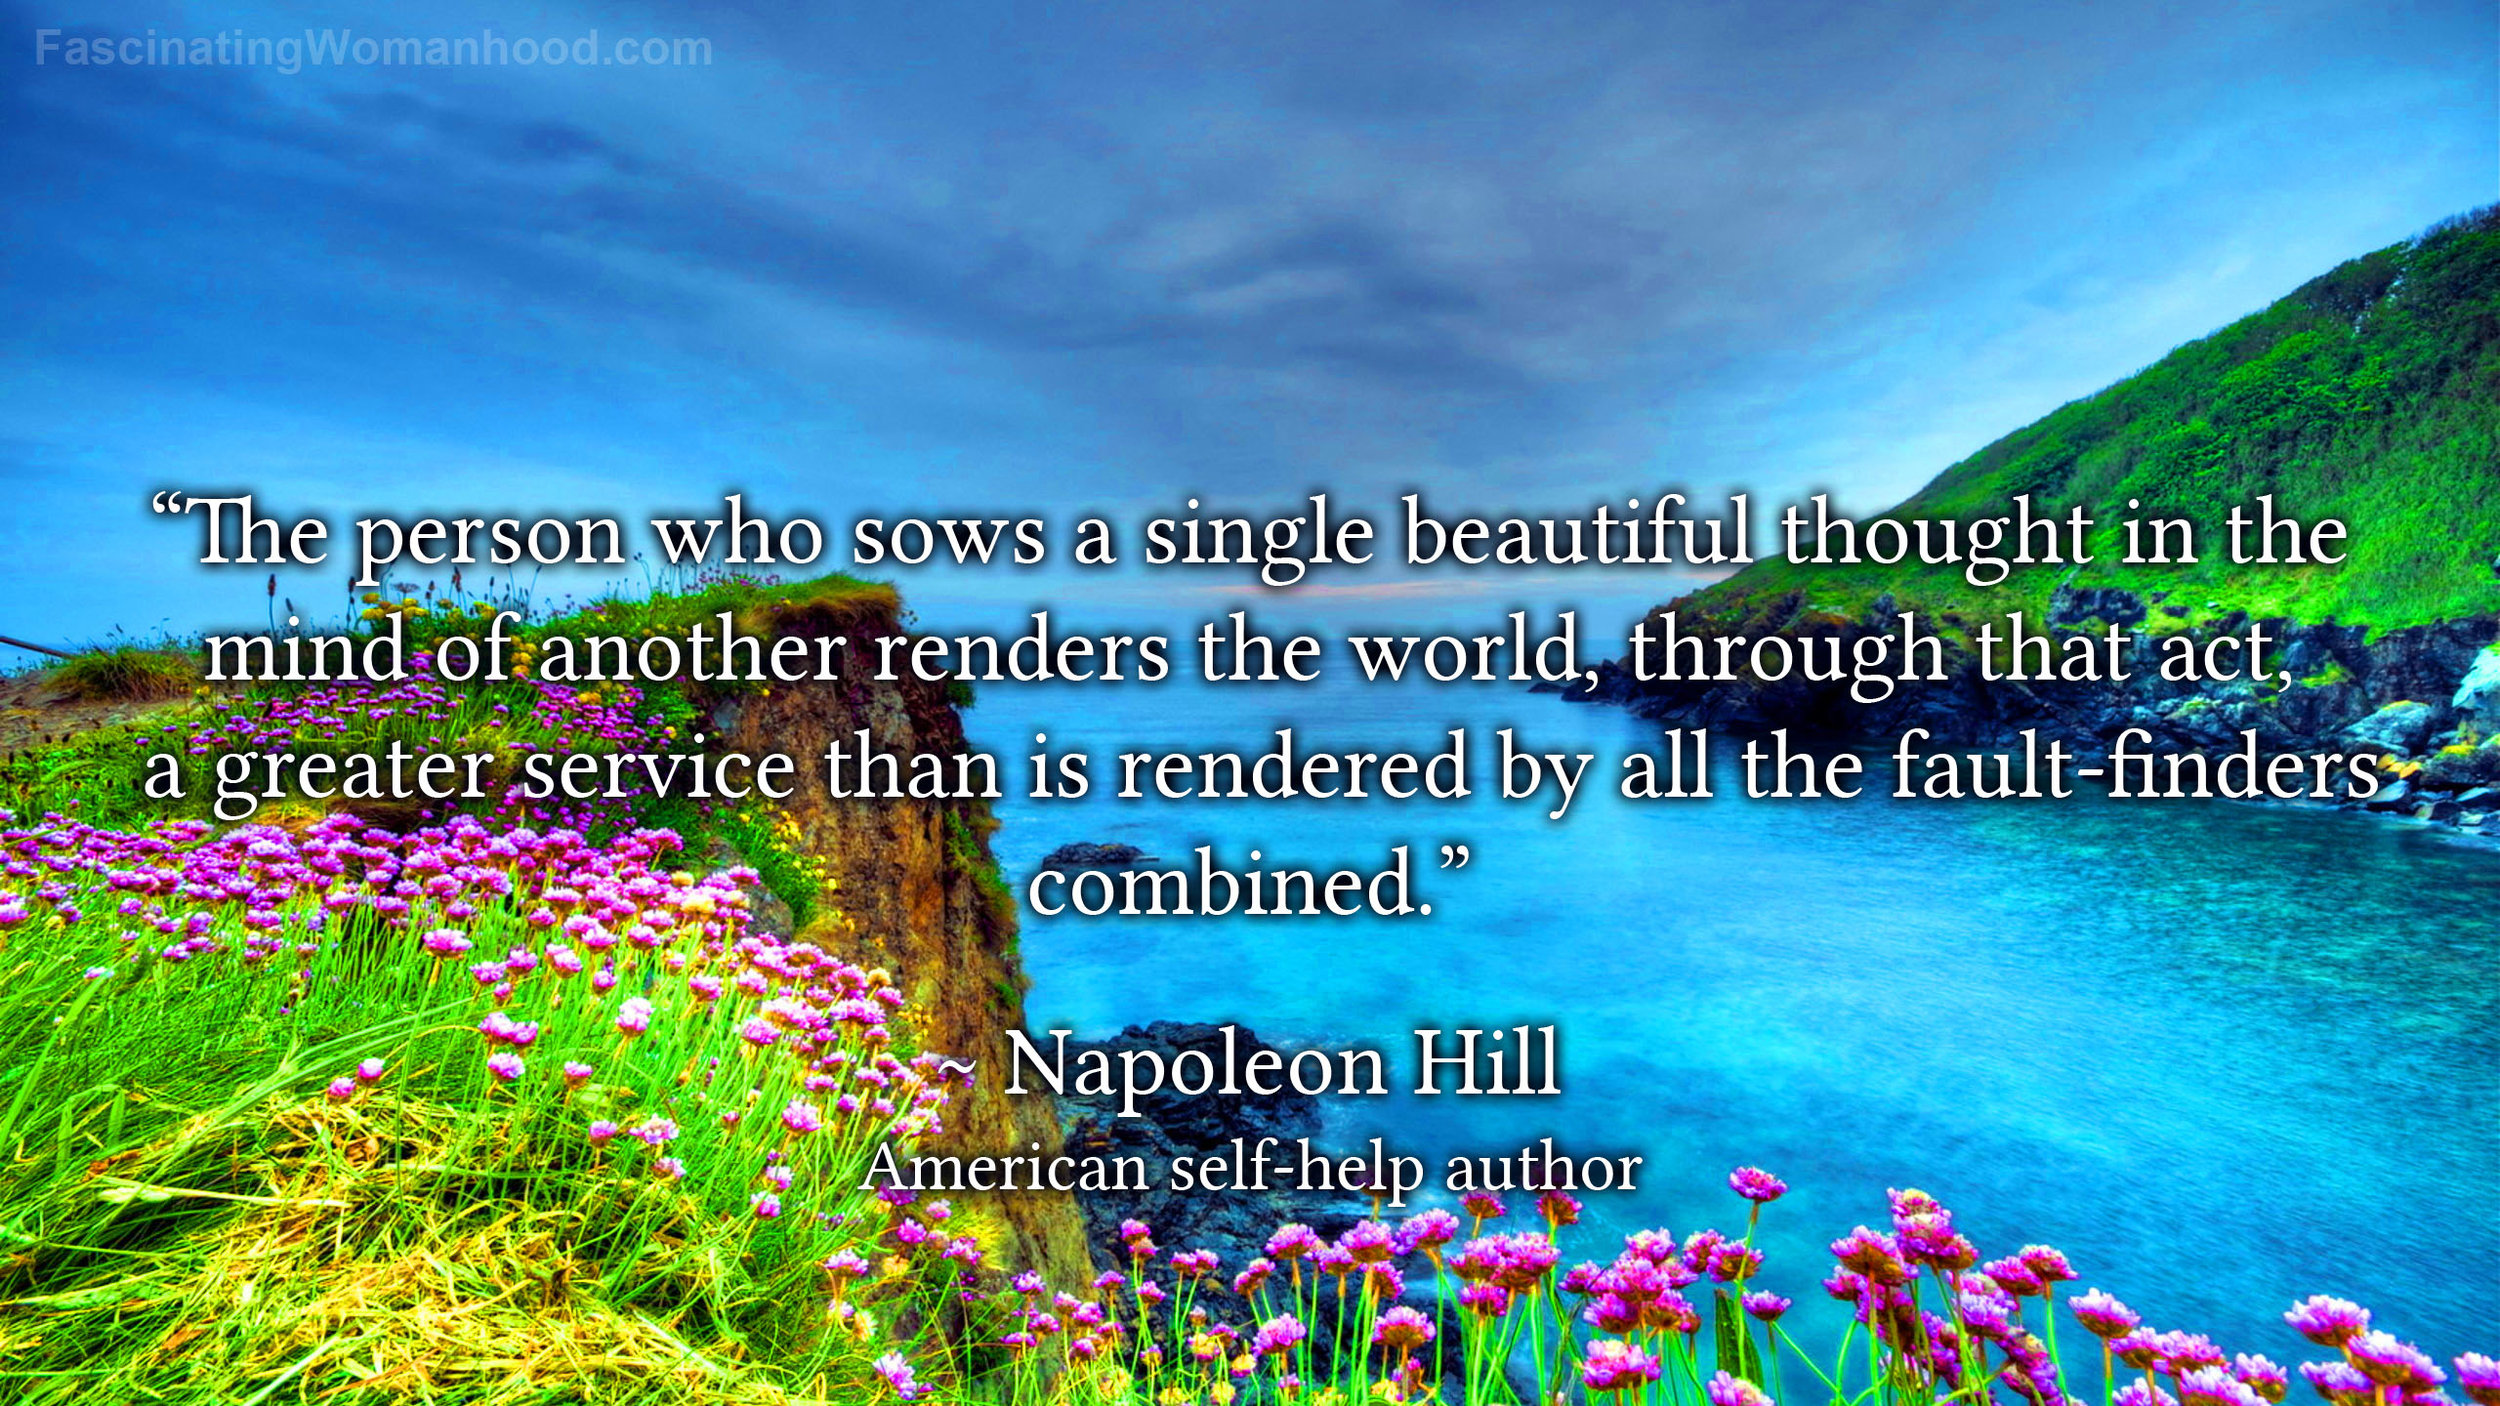 A Quote by Napoleon Hill 2.jpg